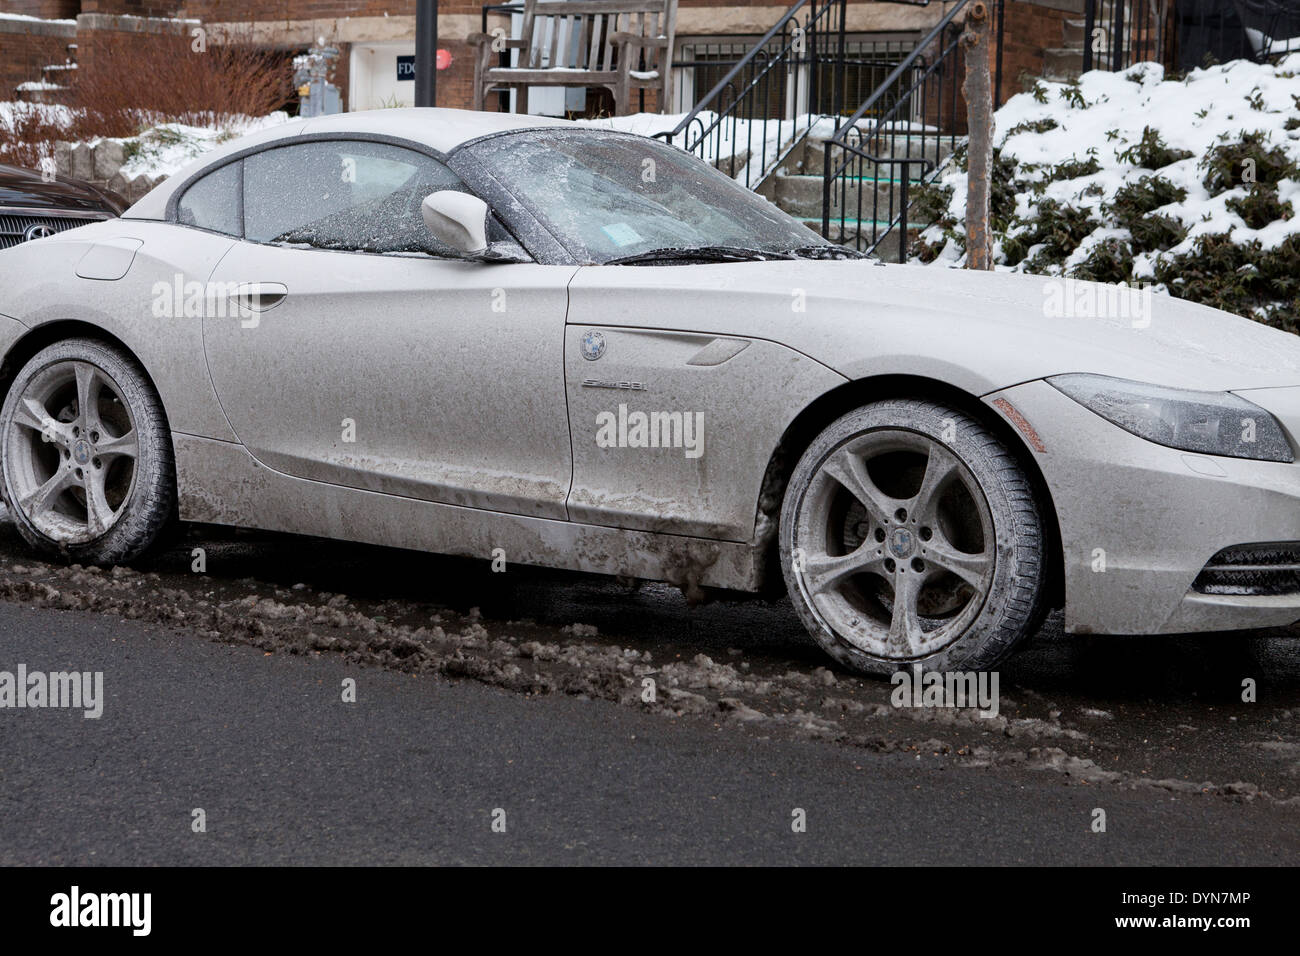 Car covered in dried road salt brine - USA Stock Photo